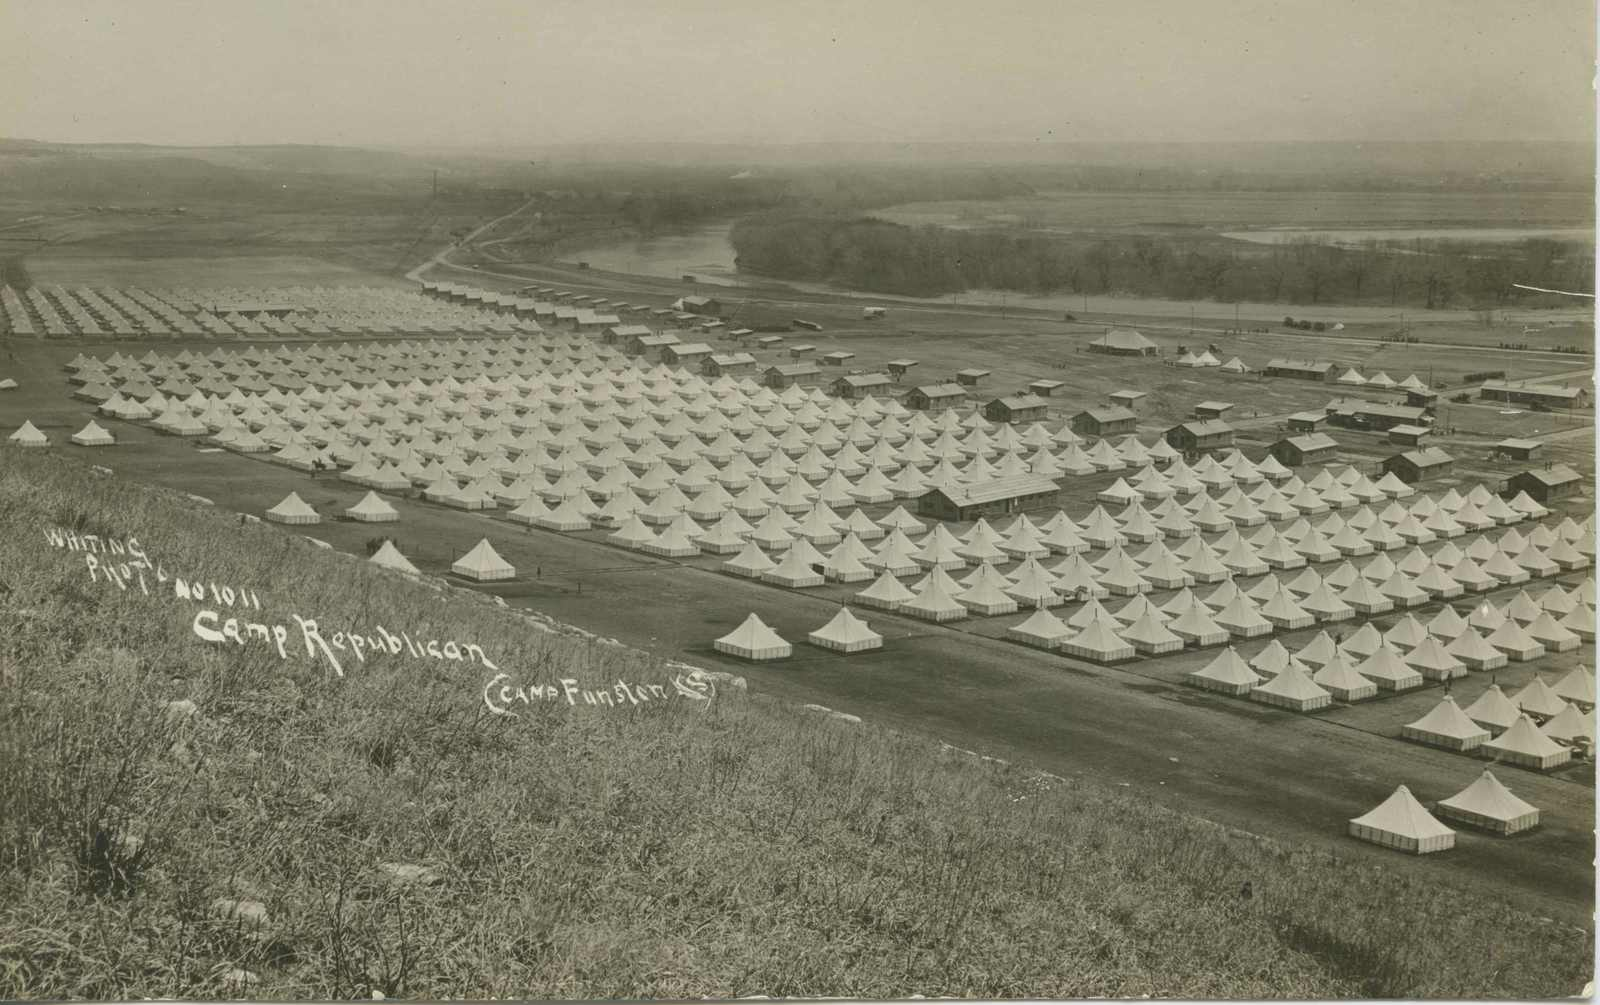 Ceremonies - Camp Funston thru Camp Lee - Camp Funston, 1918